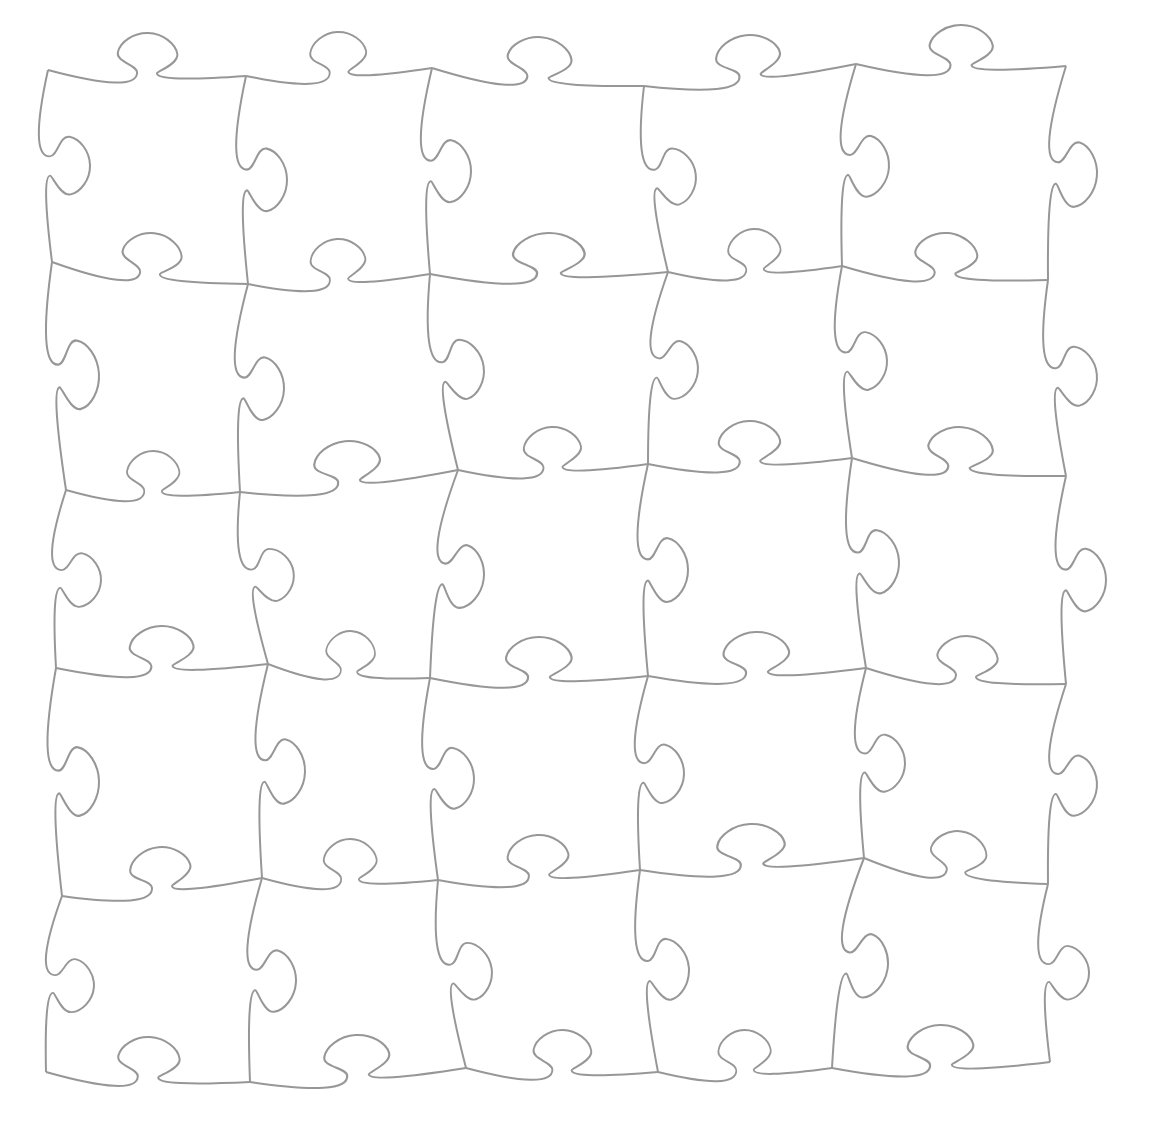 A grid of mostly-identical jigsaw puzzles